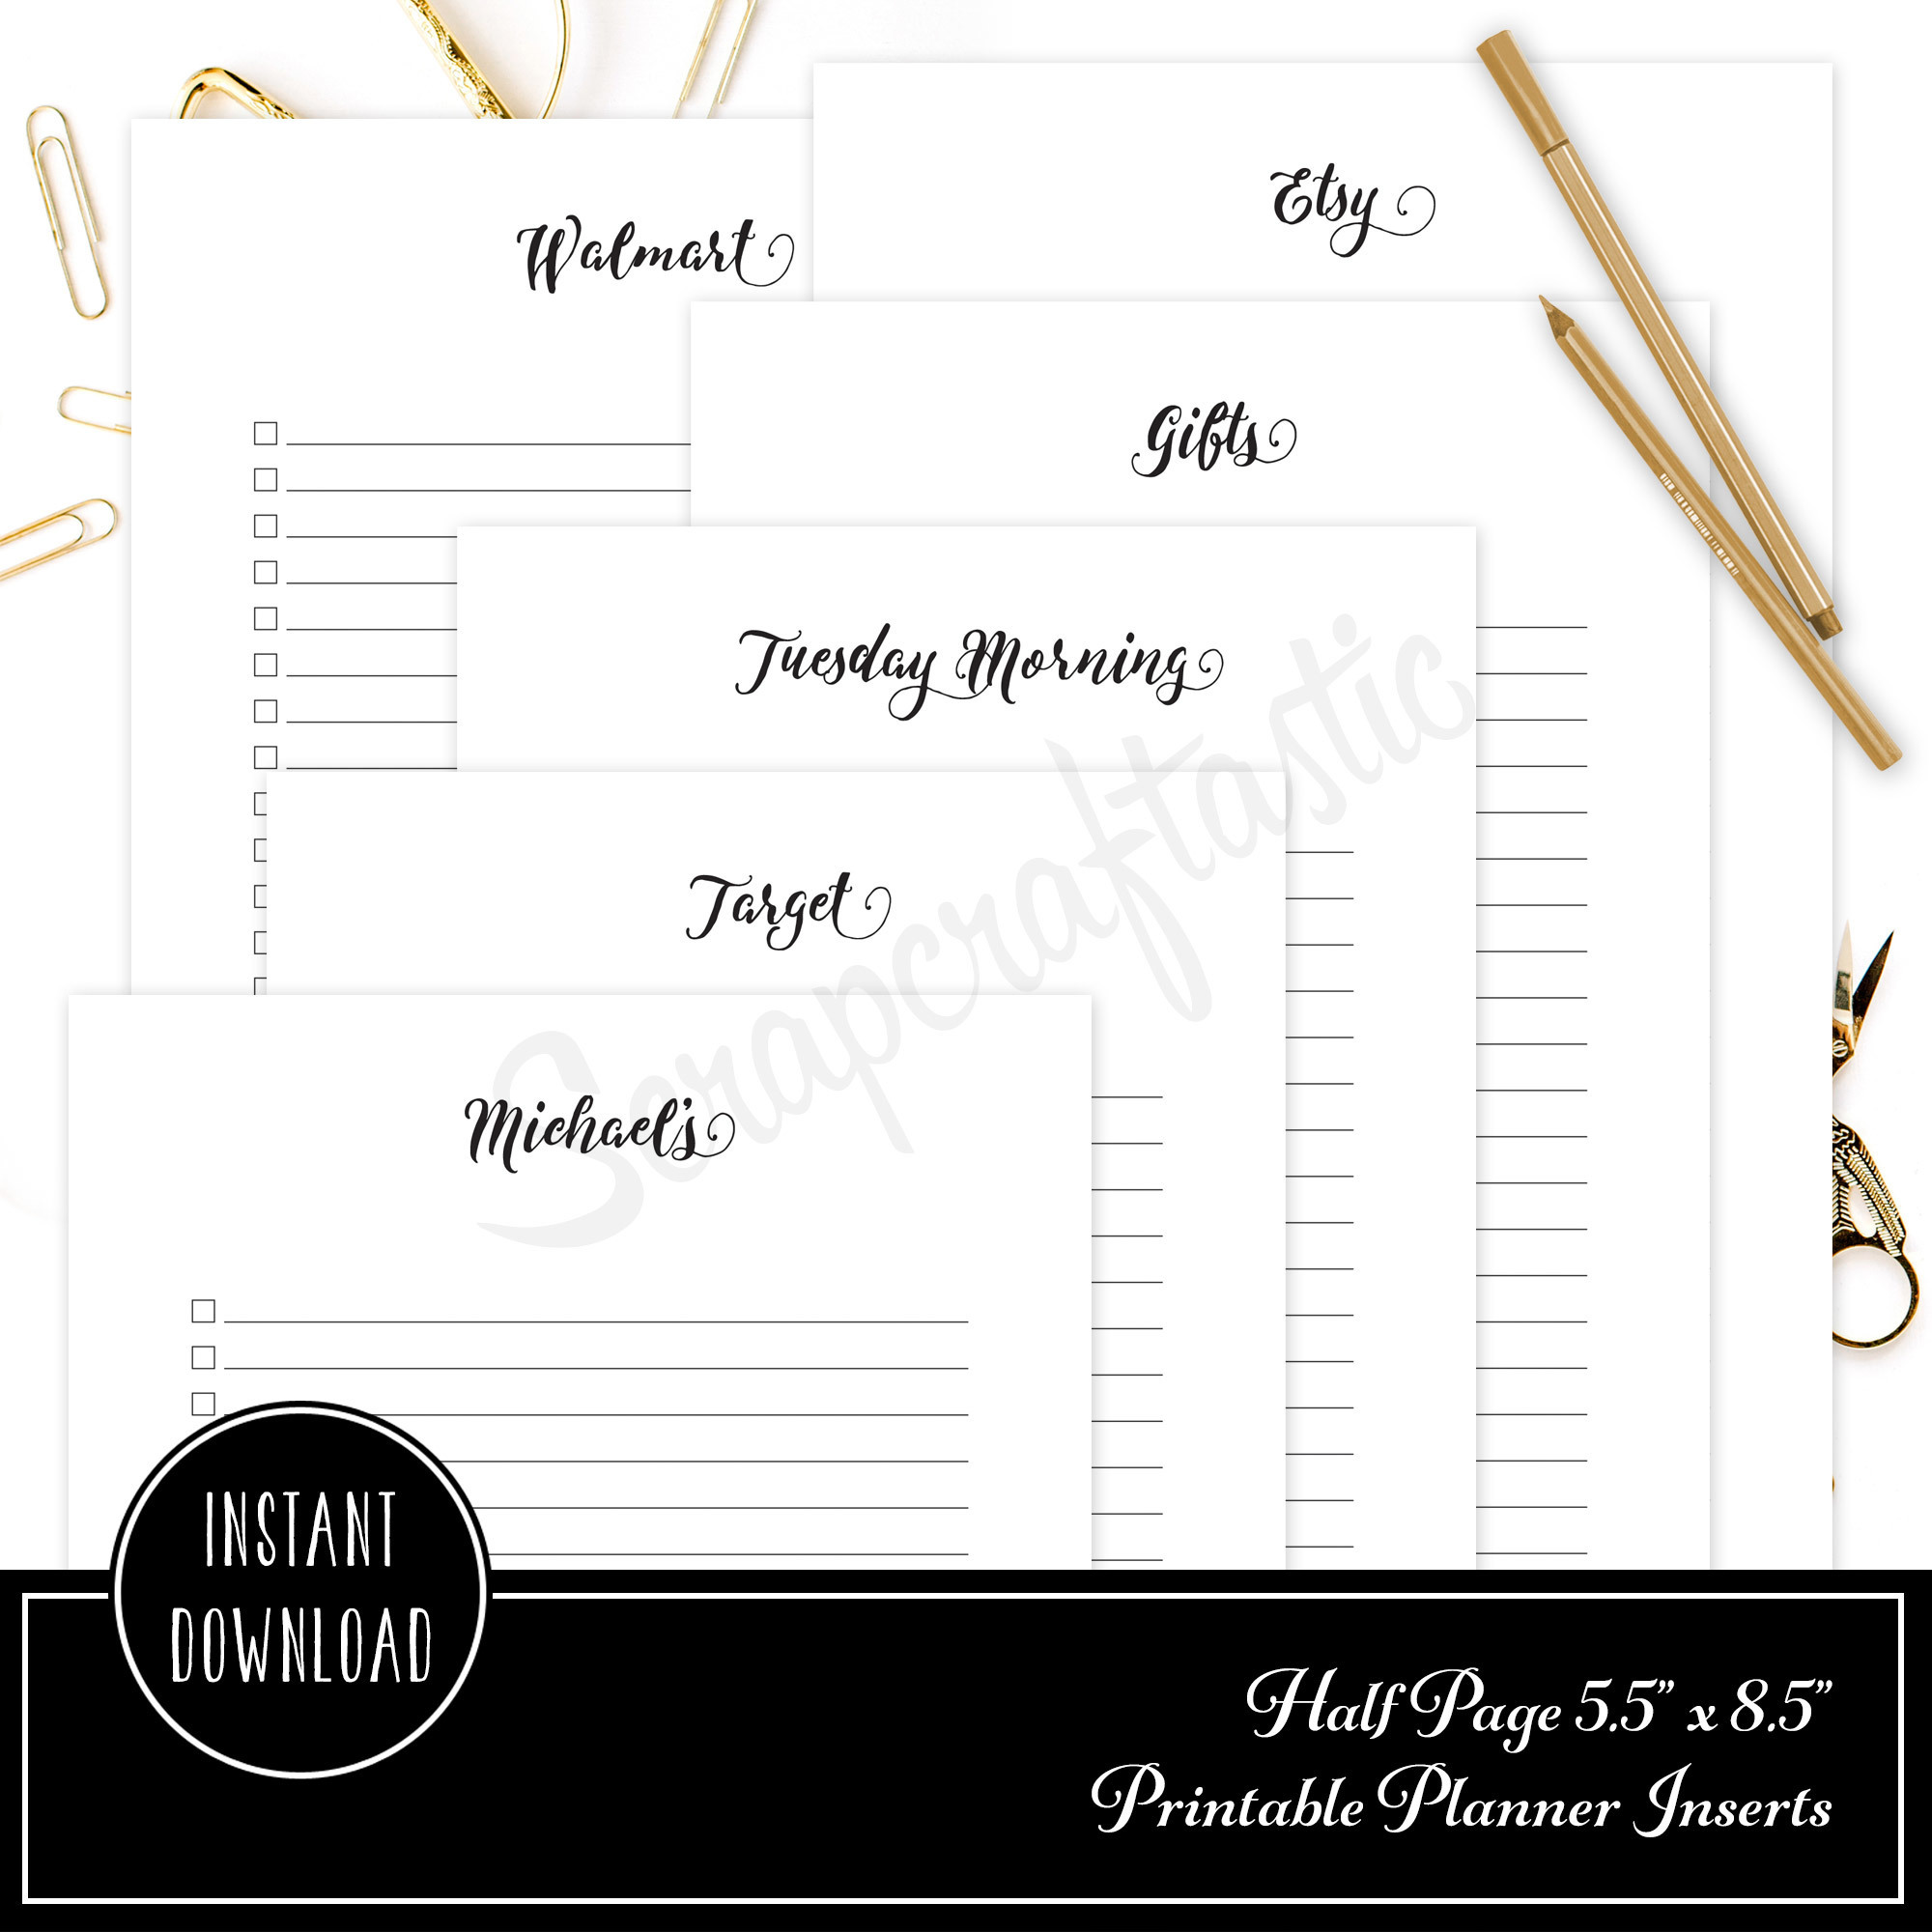 Shopping Check List Half Page/A5 Size Printable Planner Inserts 00312